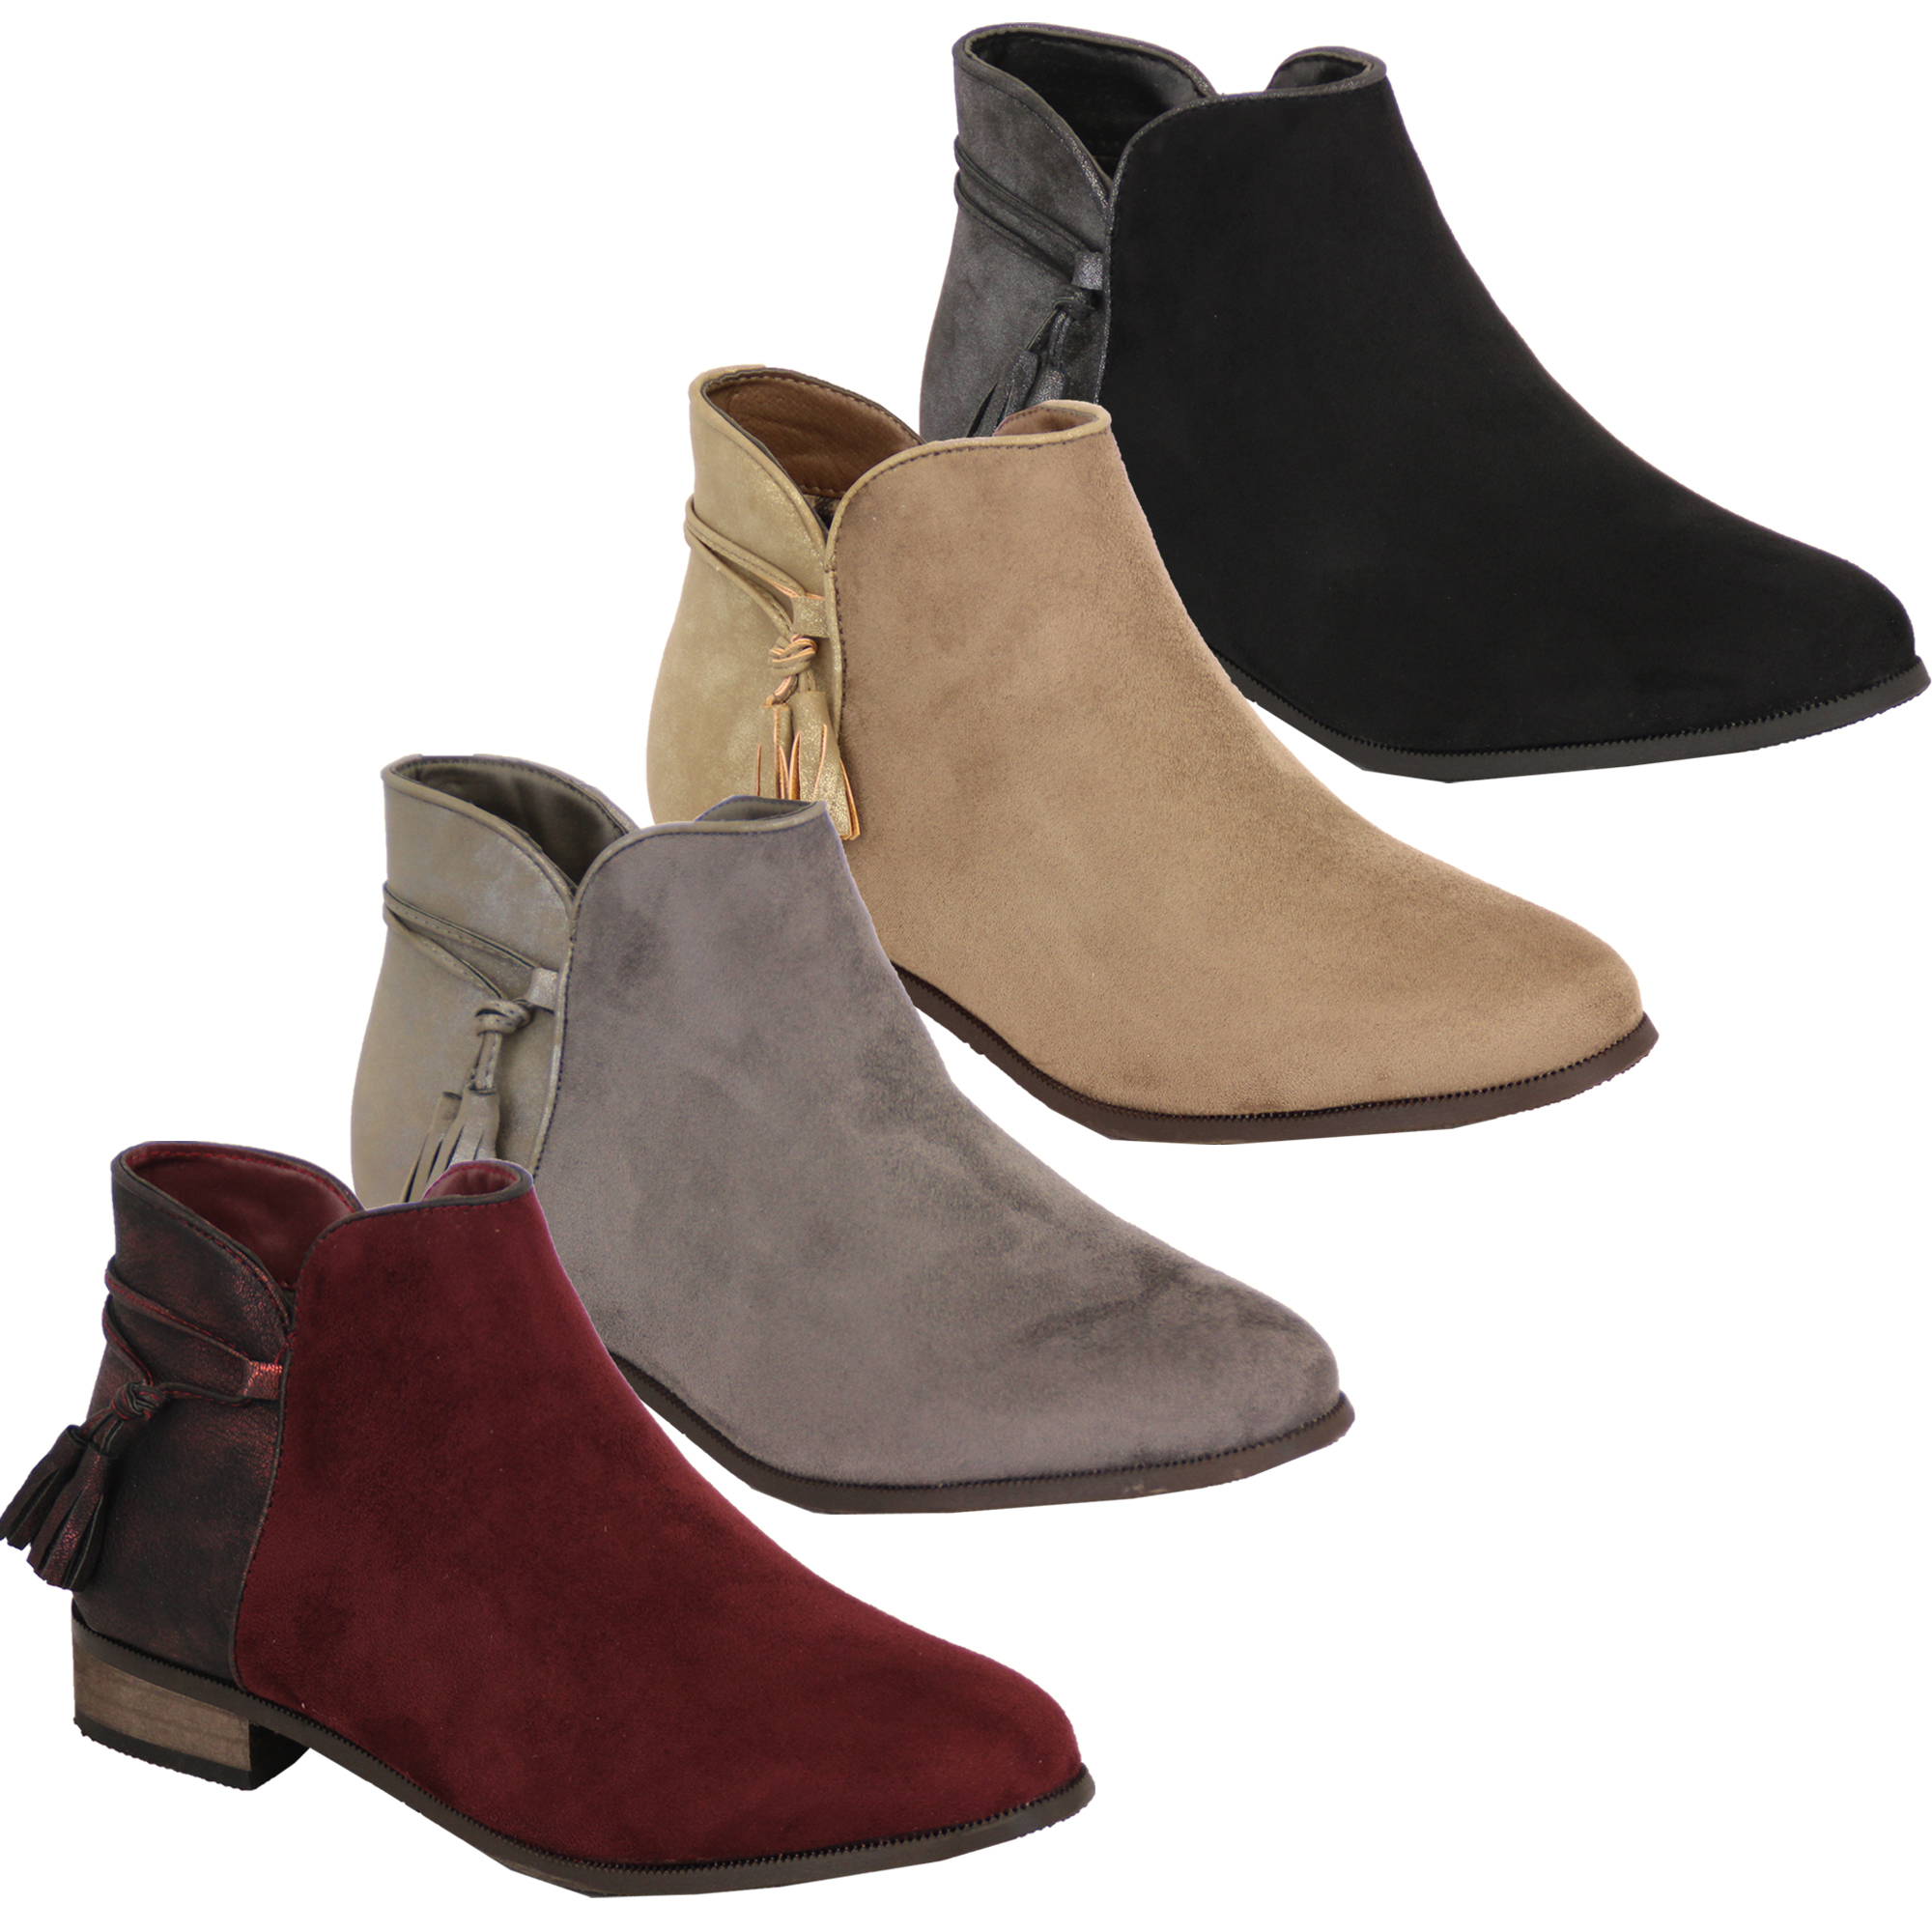 Ladies Chelsea Boots Womens Suede Look Shoes Ankle Zip Tassel Low ... c70a146f529e